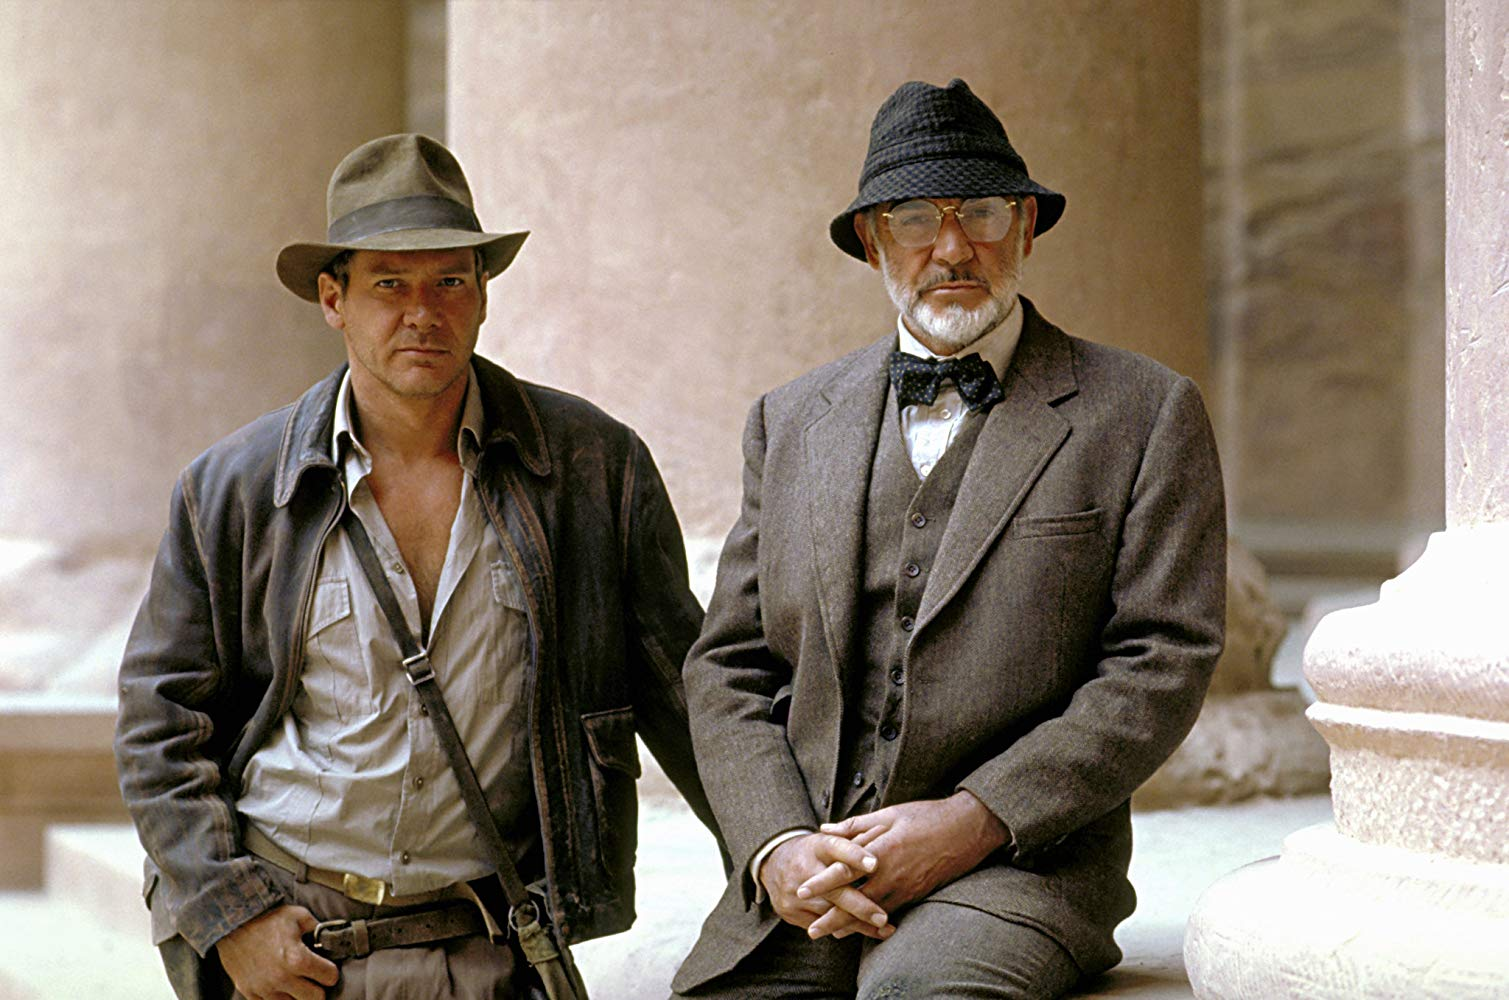 Indiana Jones (Harrison Ford) and his father Dr Henry Jones (Sean Connery) in Indiana Jones and the Last Crusade (1989)